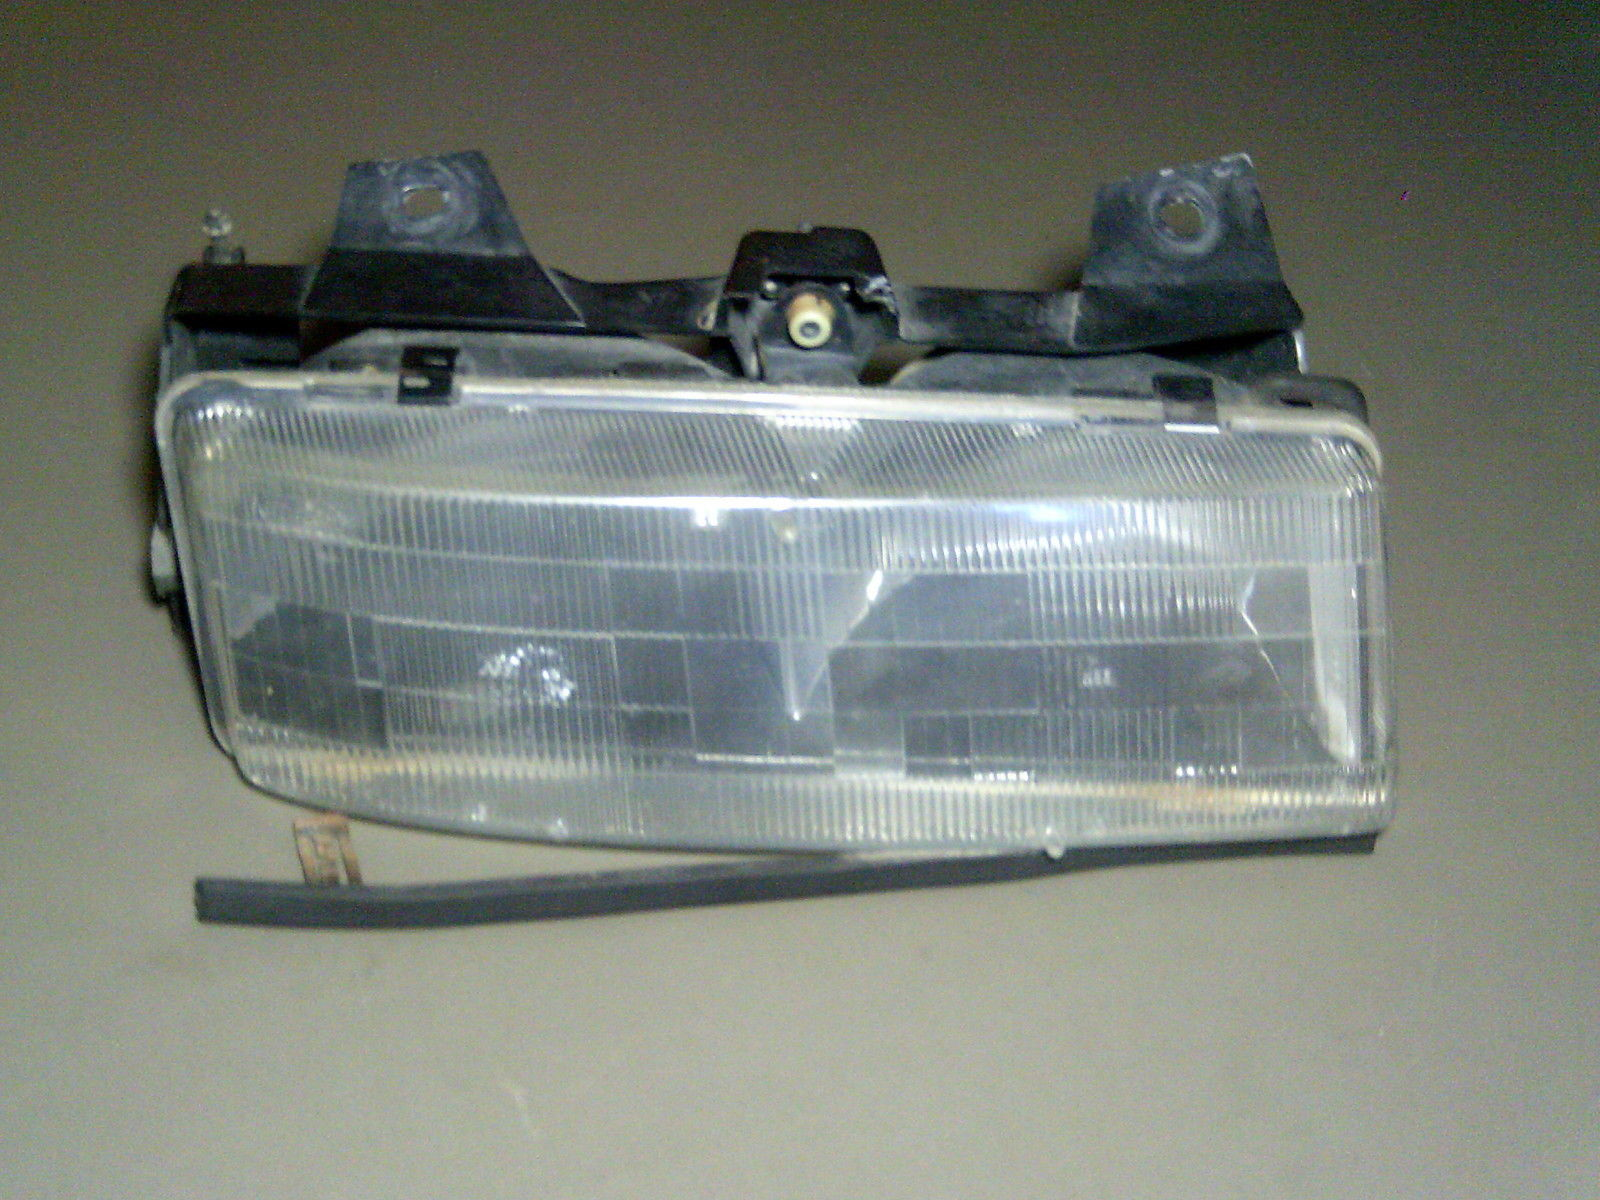 Primary image for 90-96 Corsica 90 91 92 93 Tempest RH Headlight Light Housing With Bracket